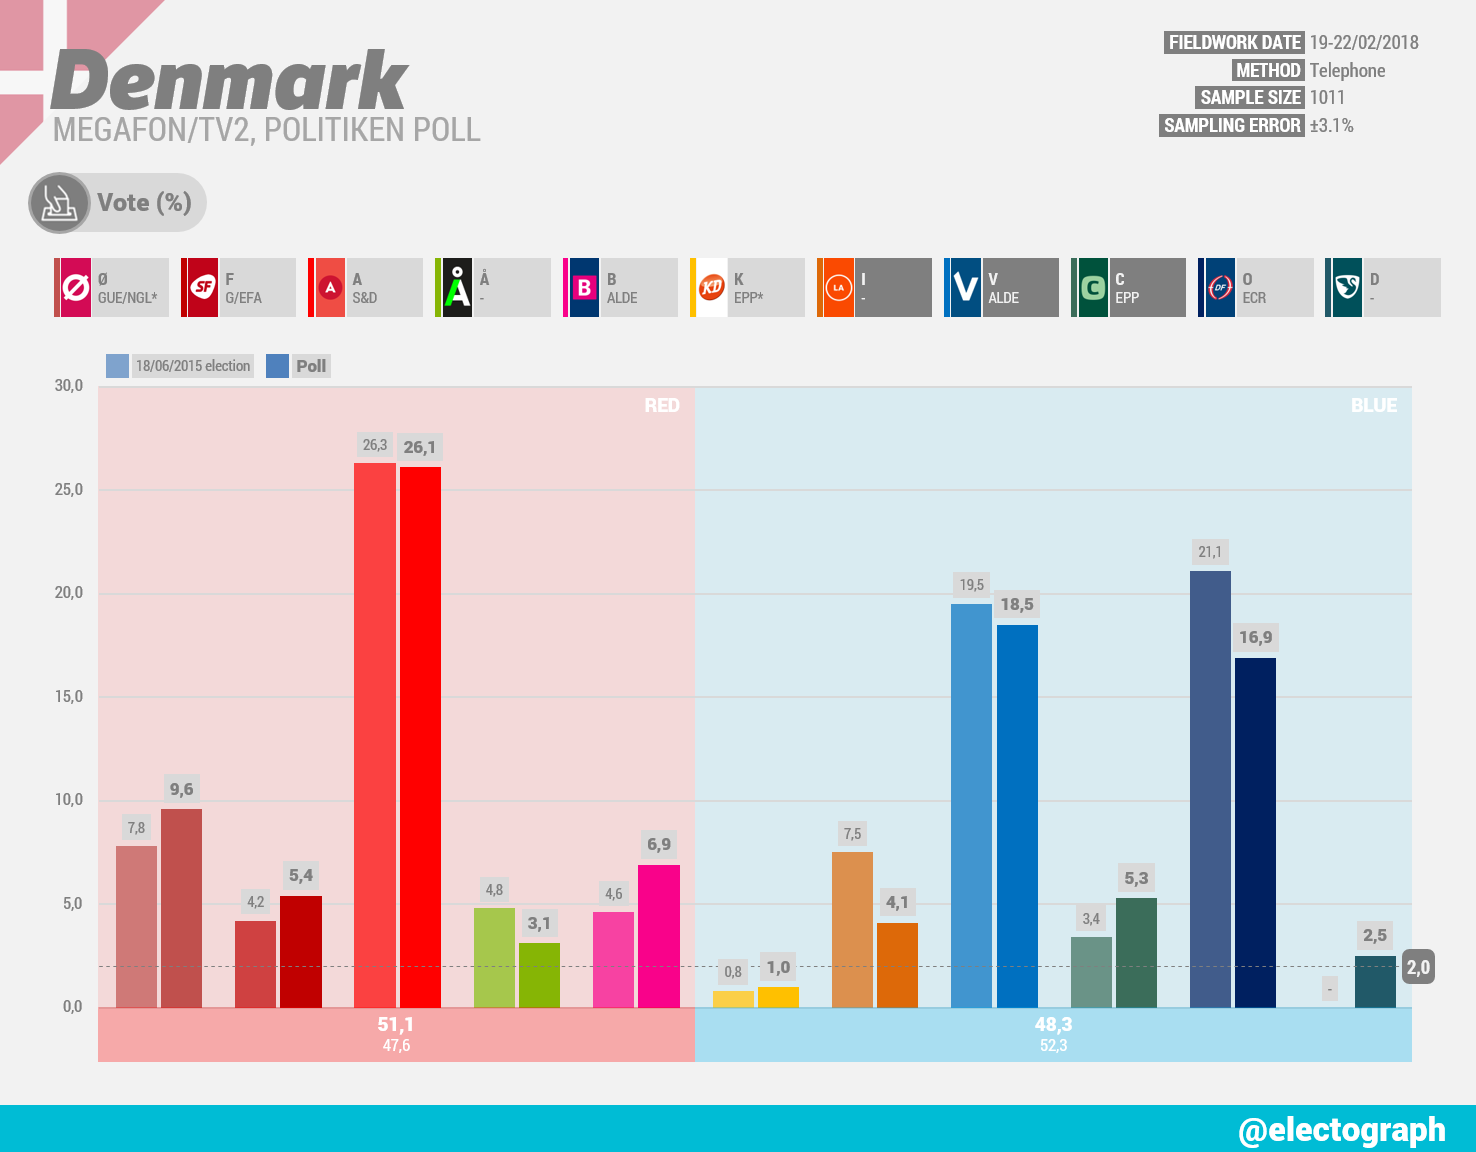 DENMARK Megafon poll chart for TV2 and Politiken, February 2018